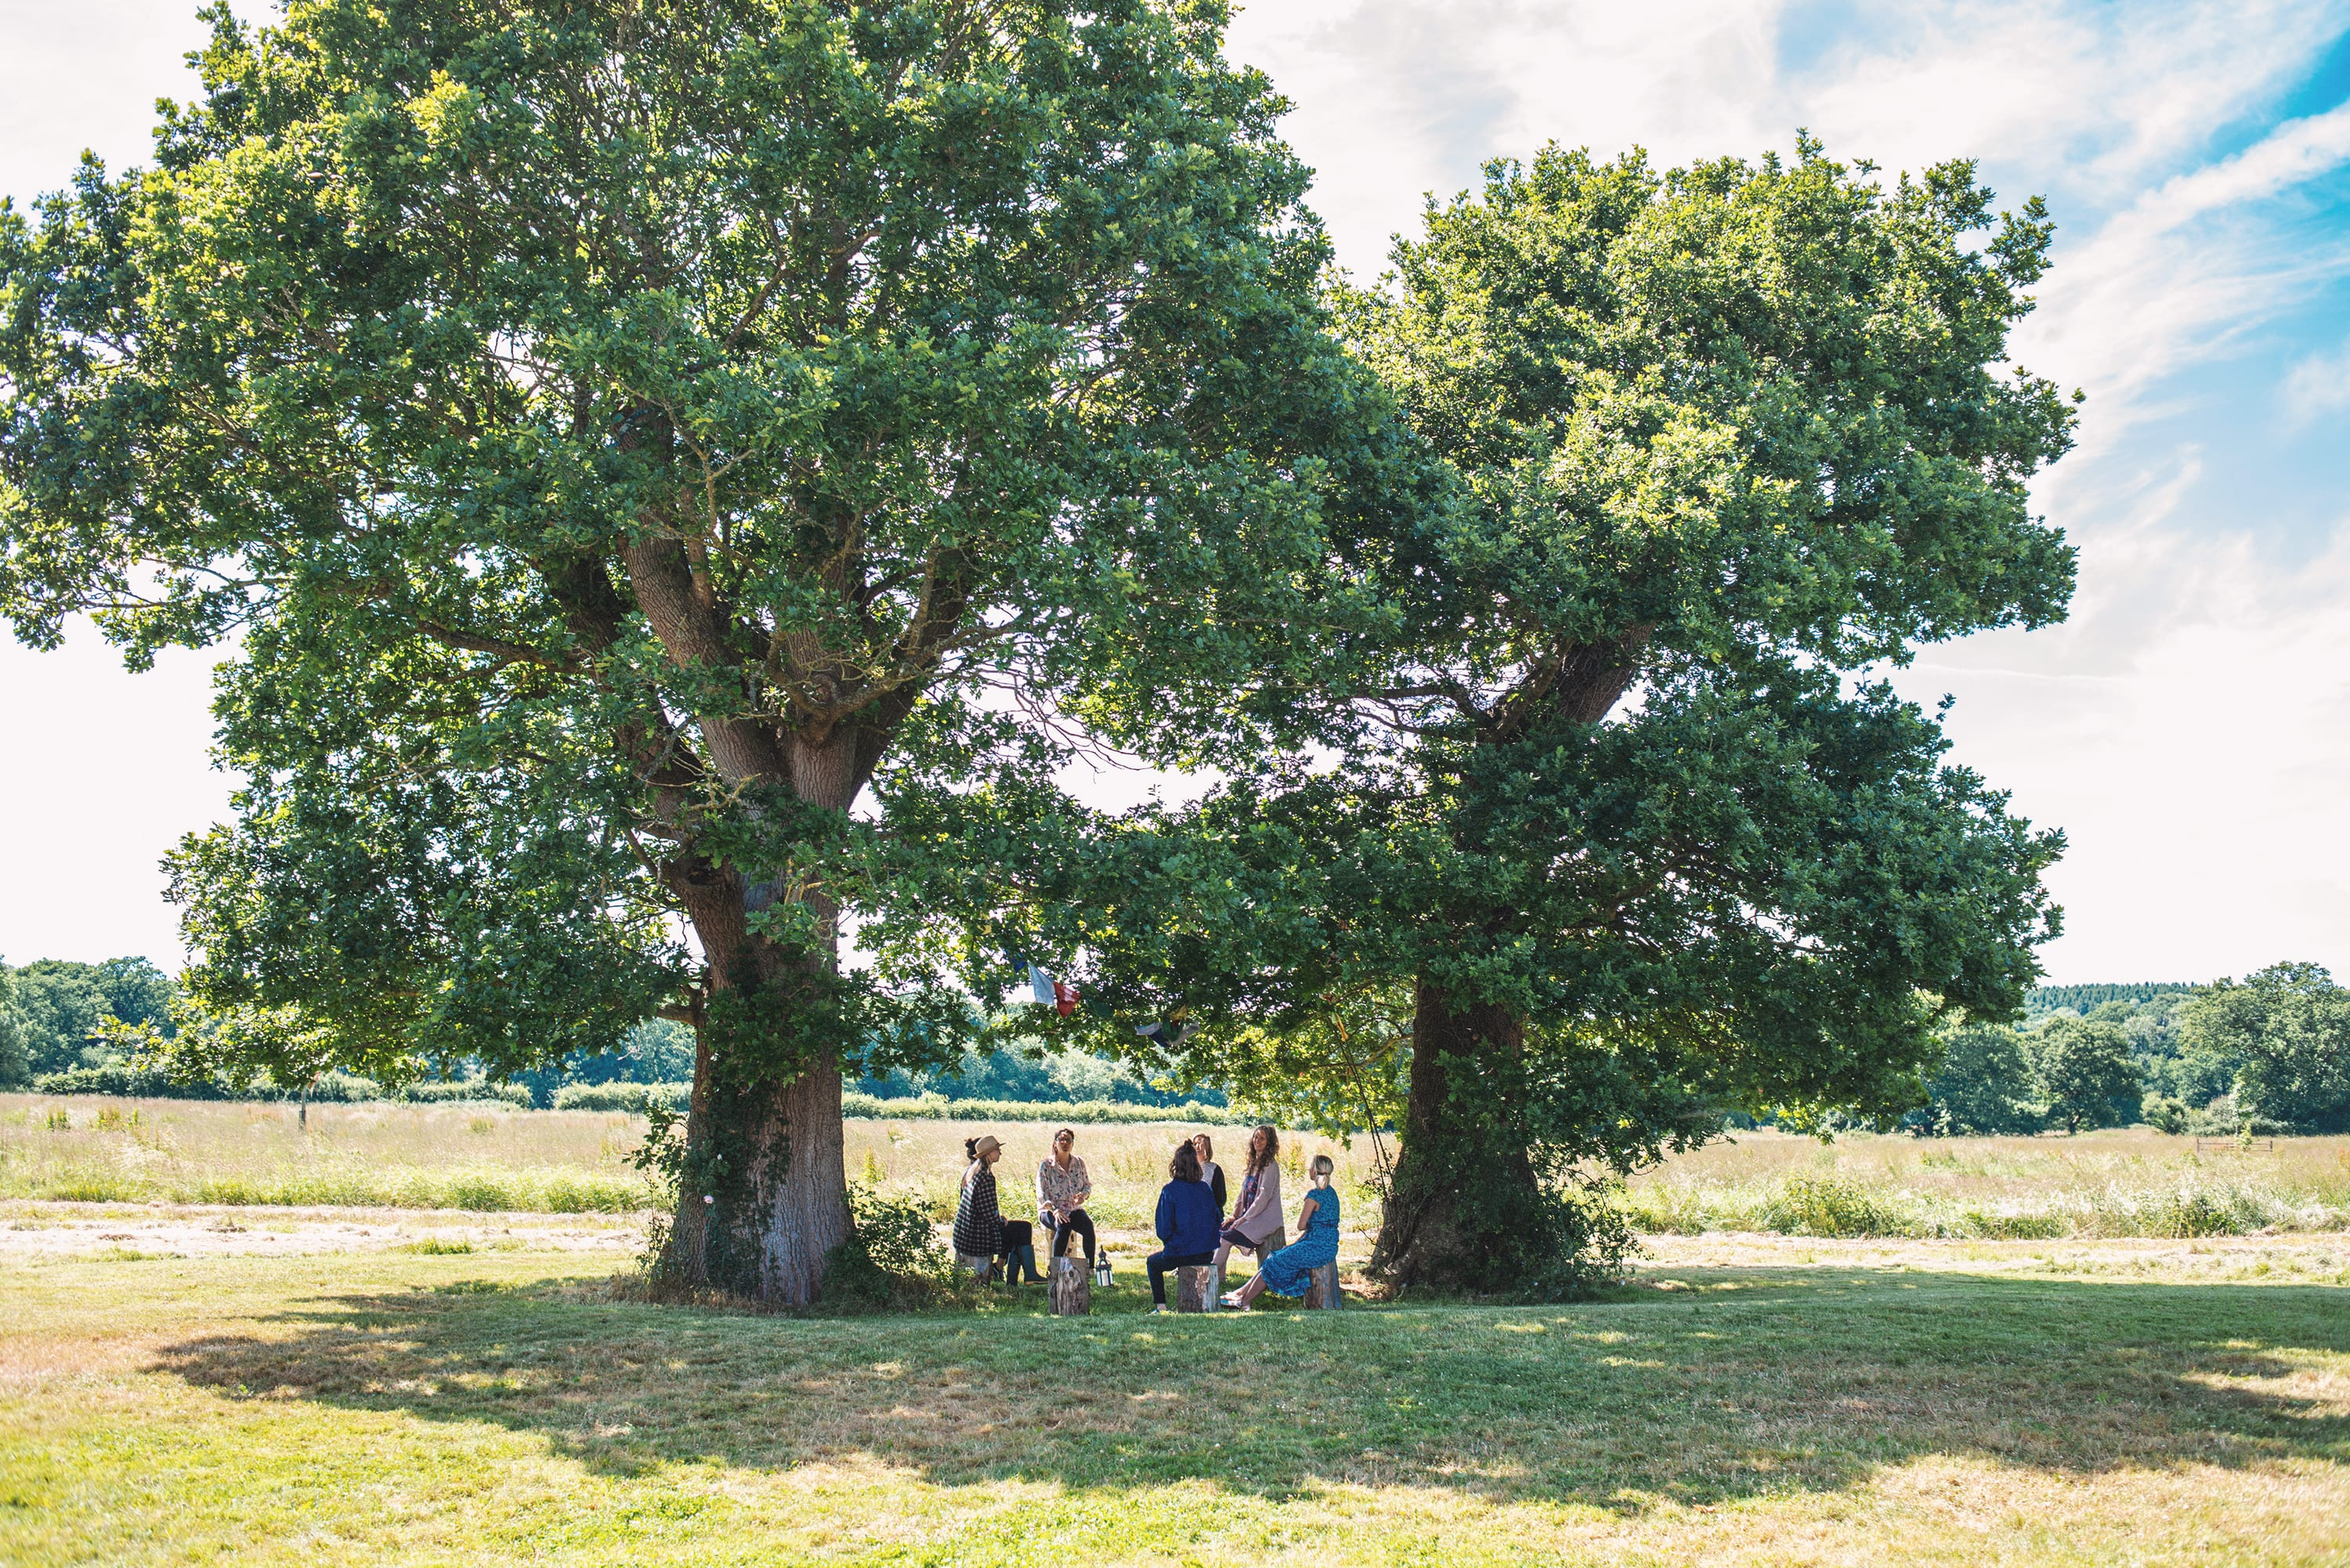 Group of women sat in a circle under oak trees